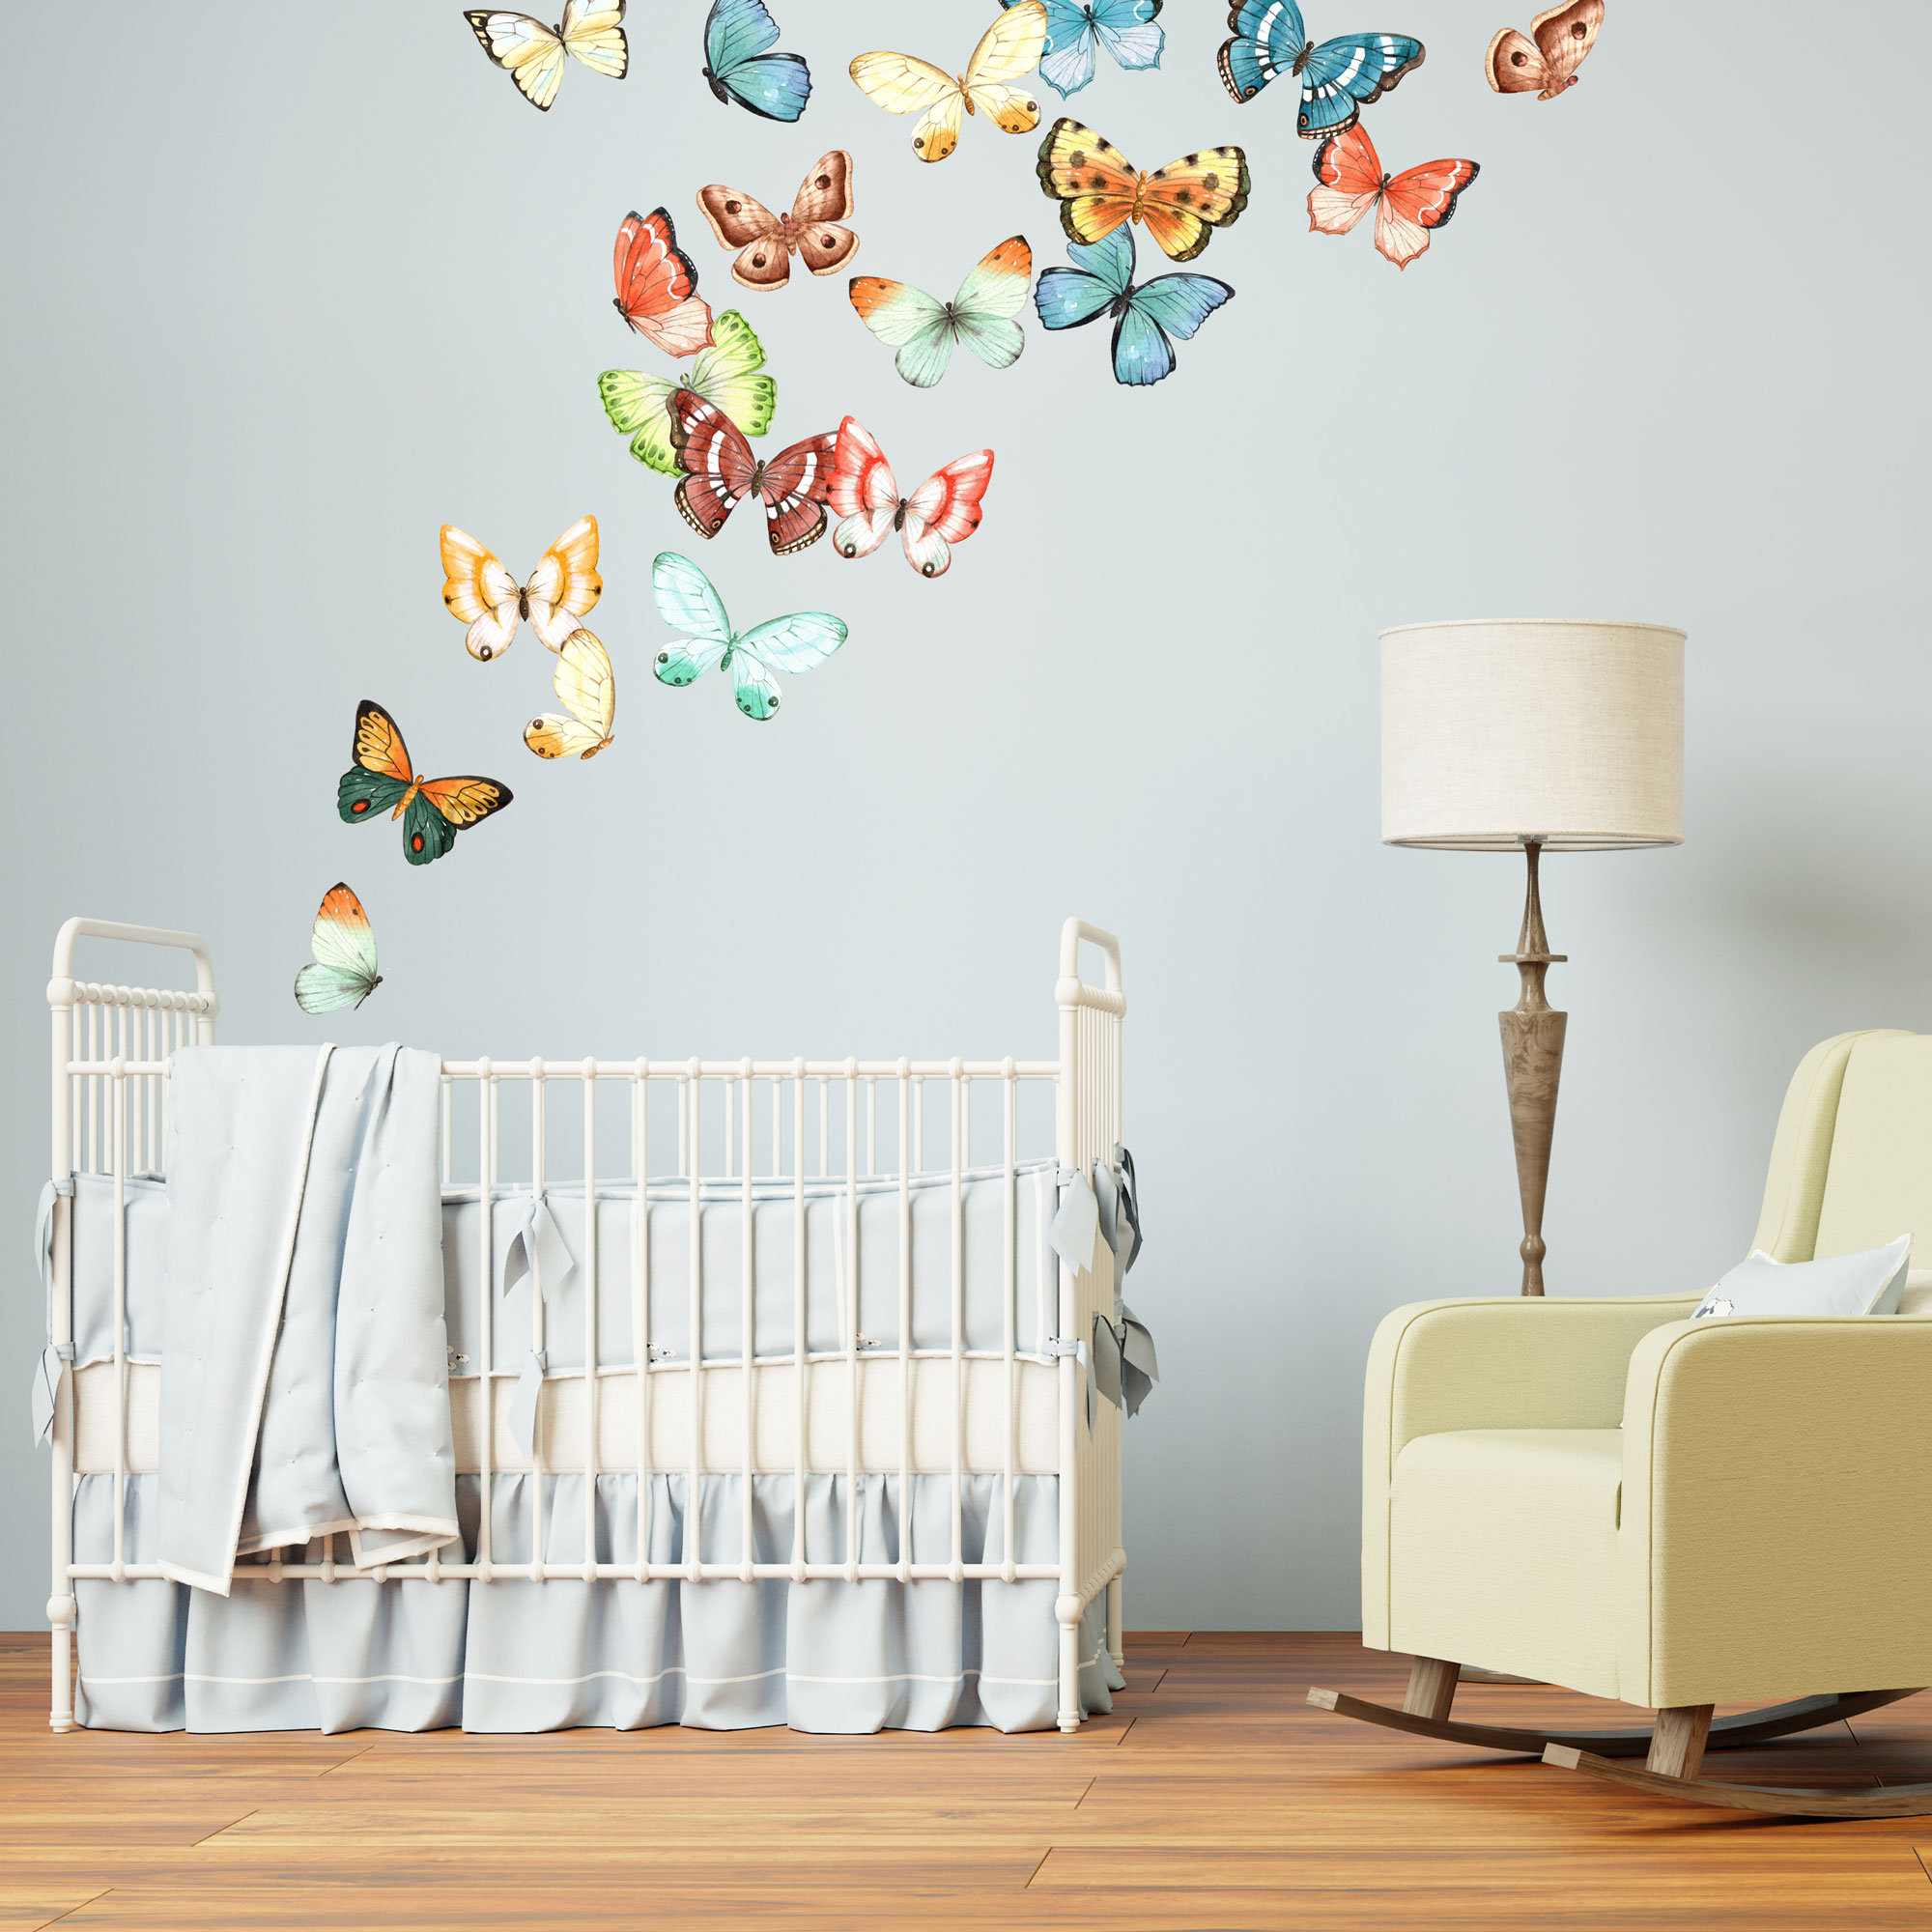 Butterfly Wall Decals Made From Peel And Stick Wallpaper Material – Removable – 20 Butterflies Included – Wb920 Intended For 3 Piece Capri Butterfly Wall Decor Sets (View 18 of 30)